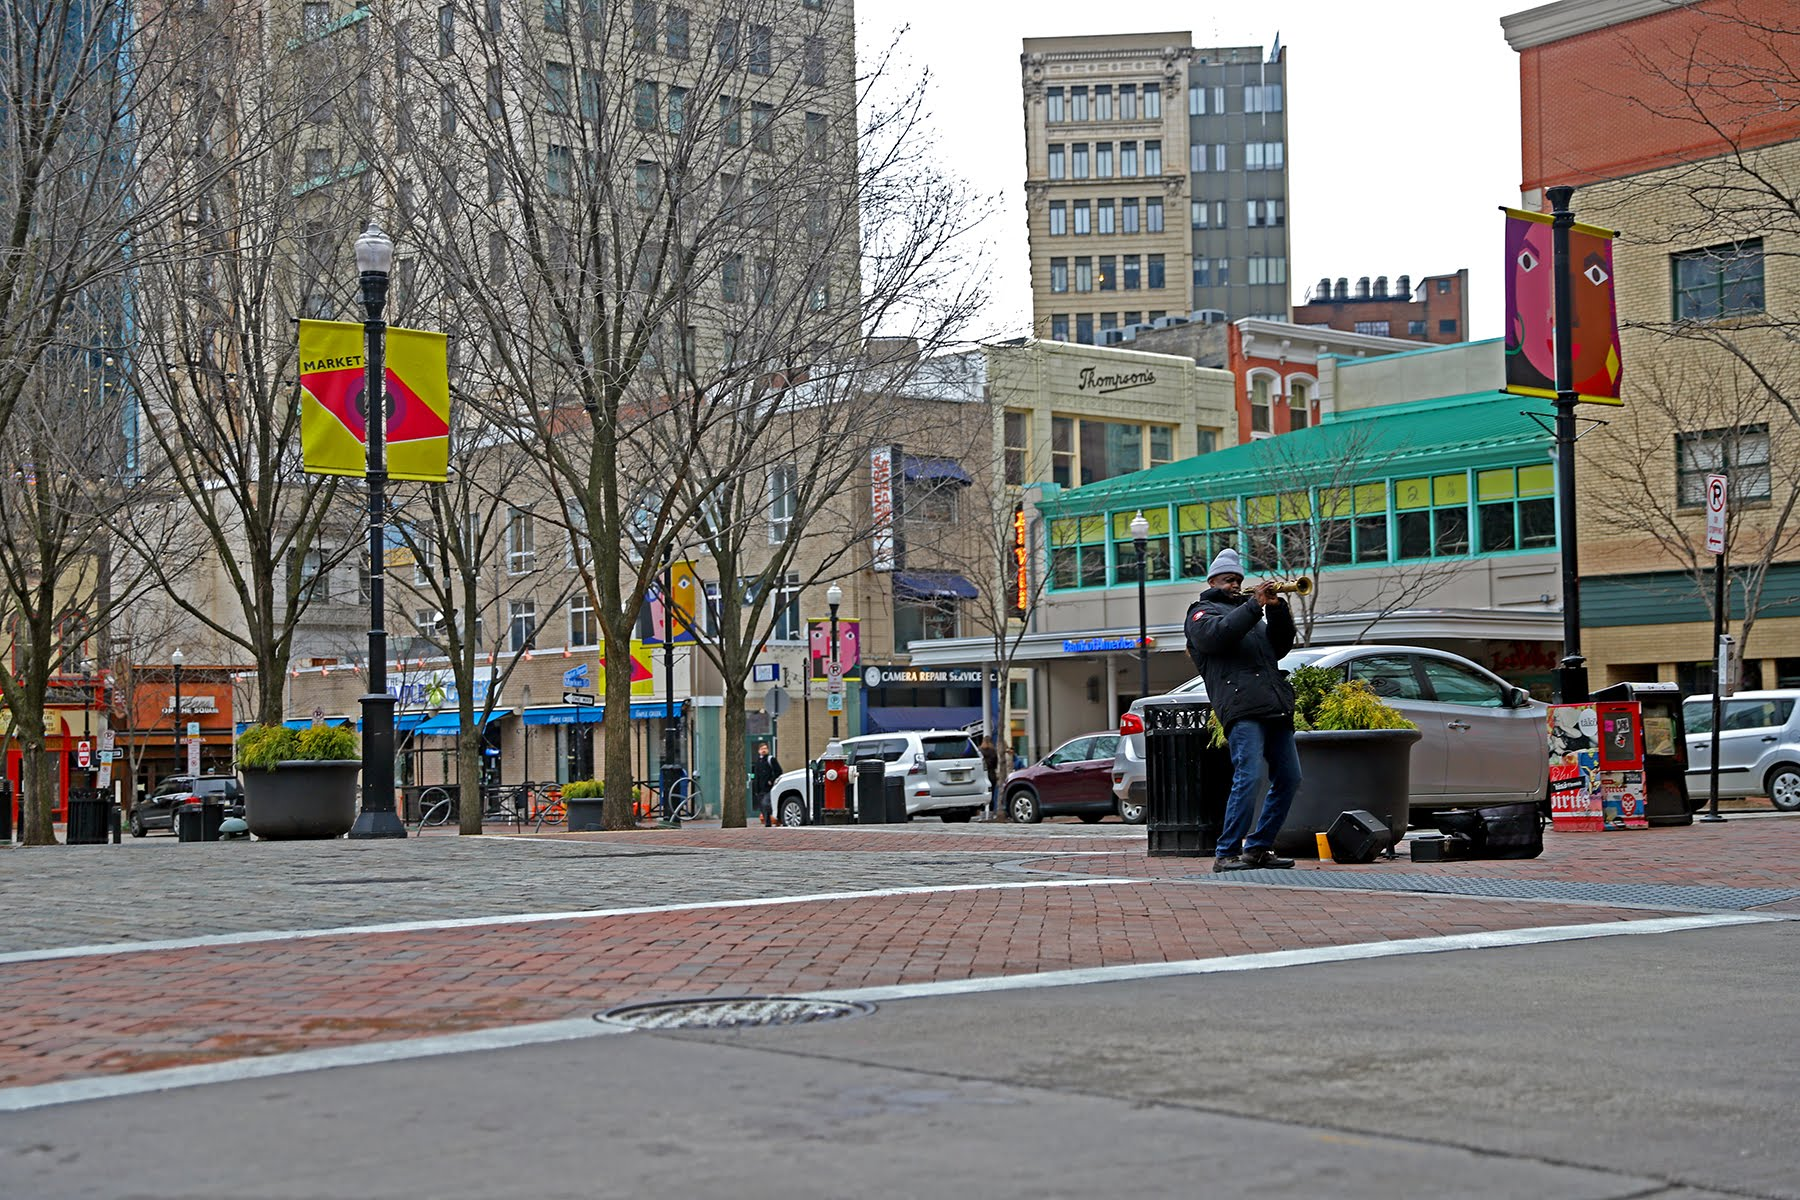 Darryl Leeper plays music live in an empty Market Square on March 17, 2020. (Photo by Jay Manning/PublicSource)